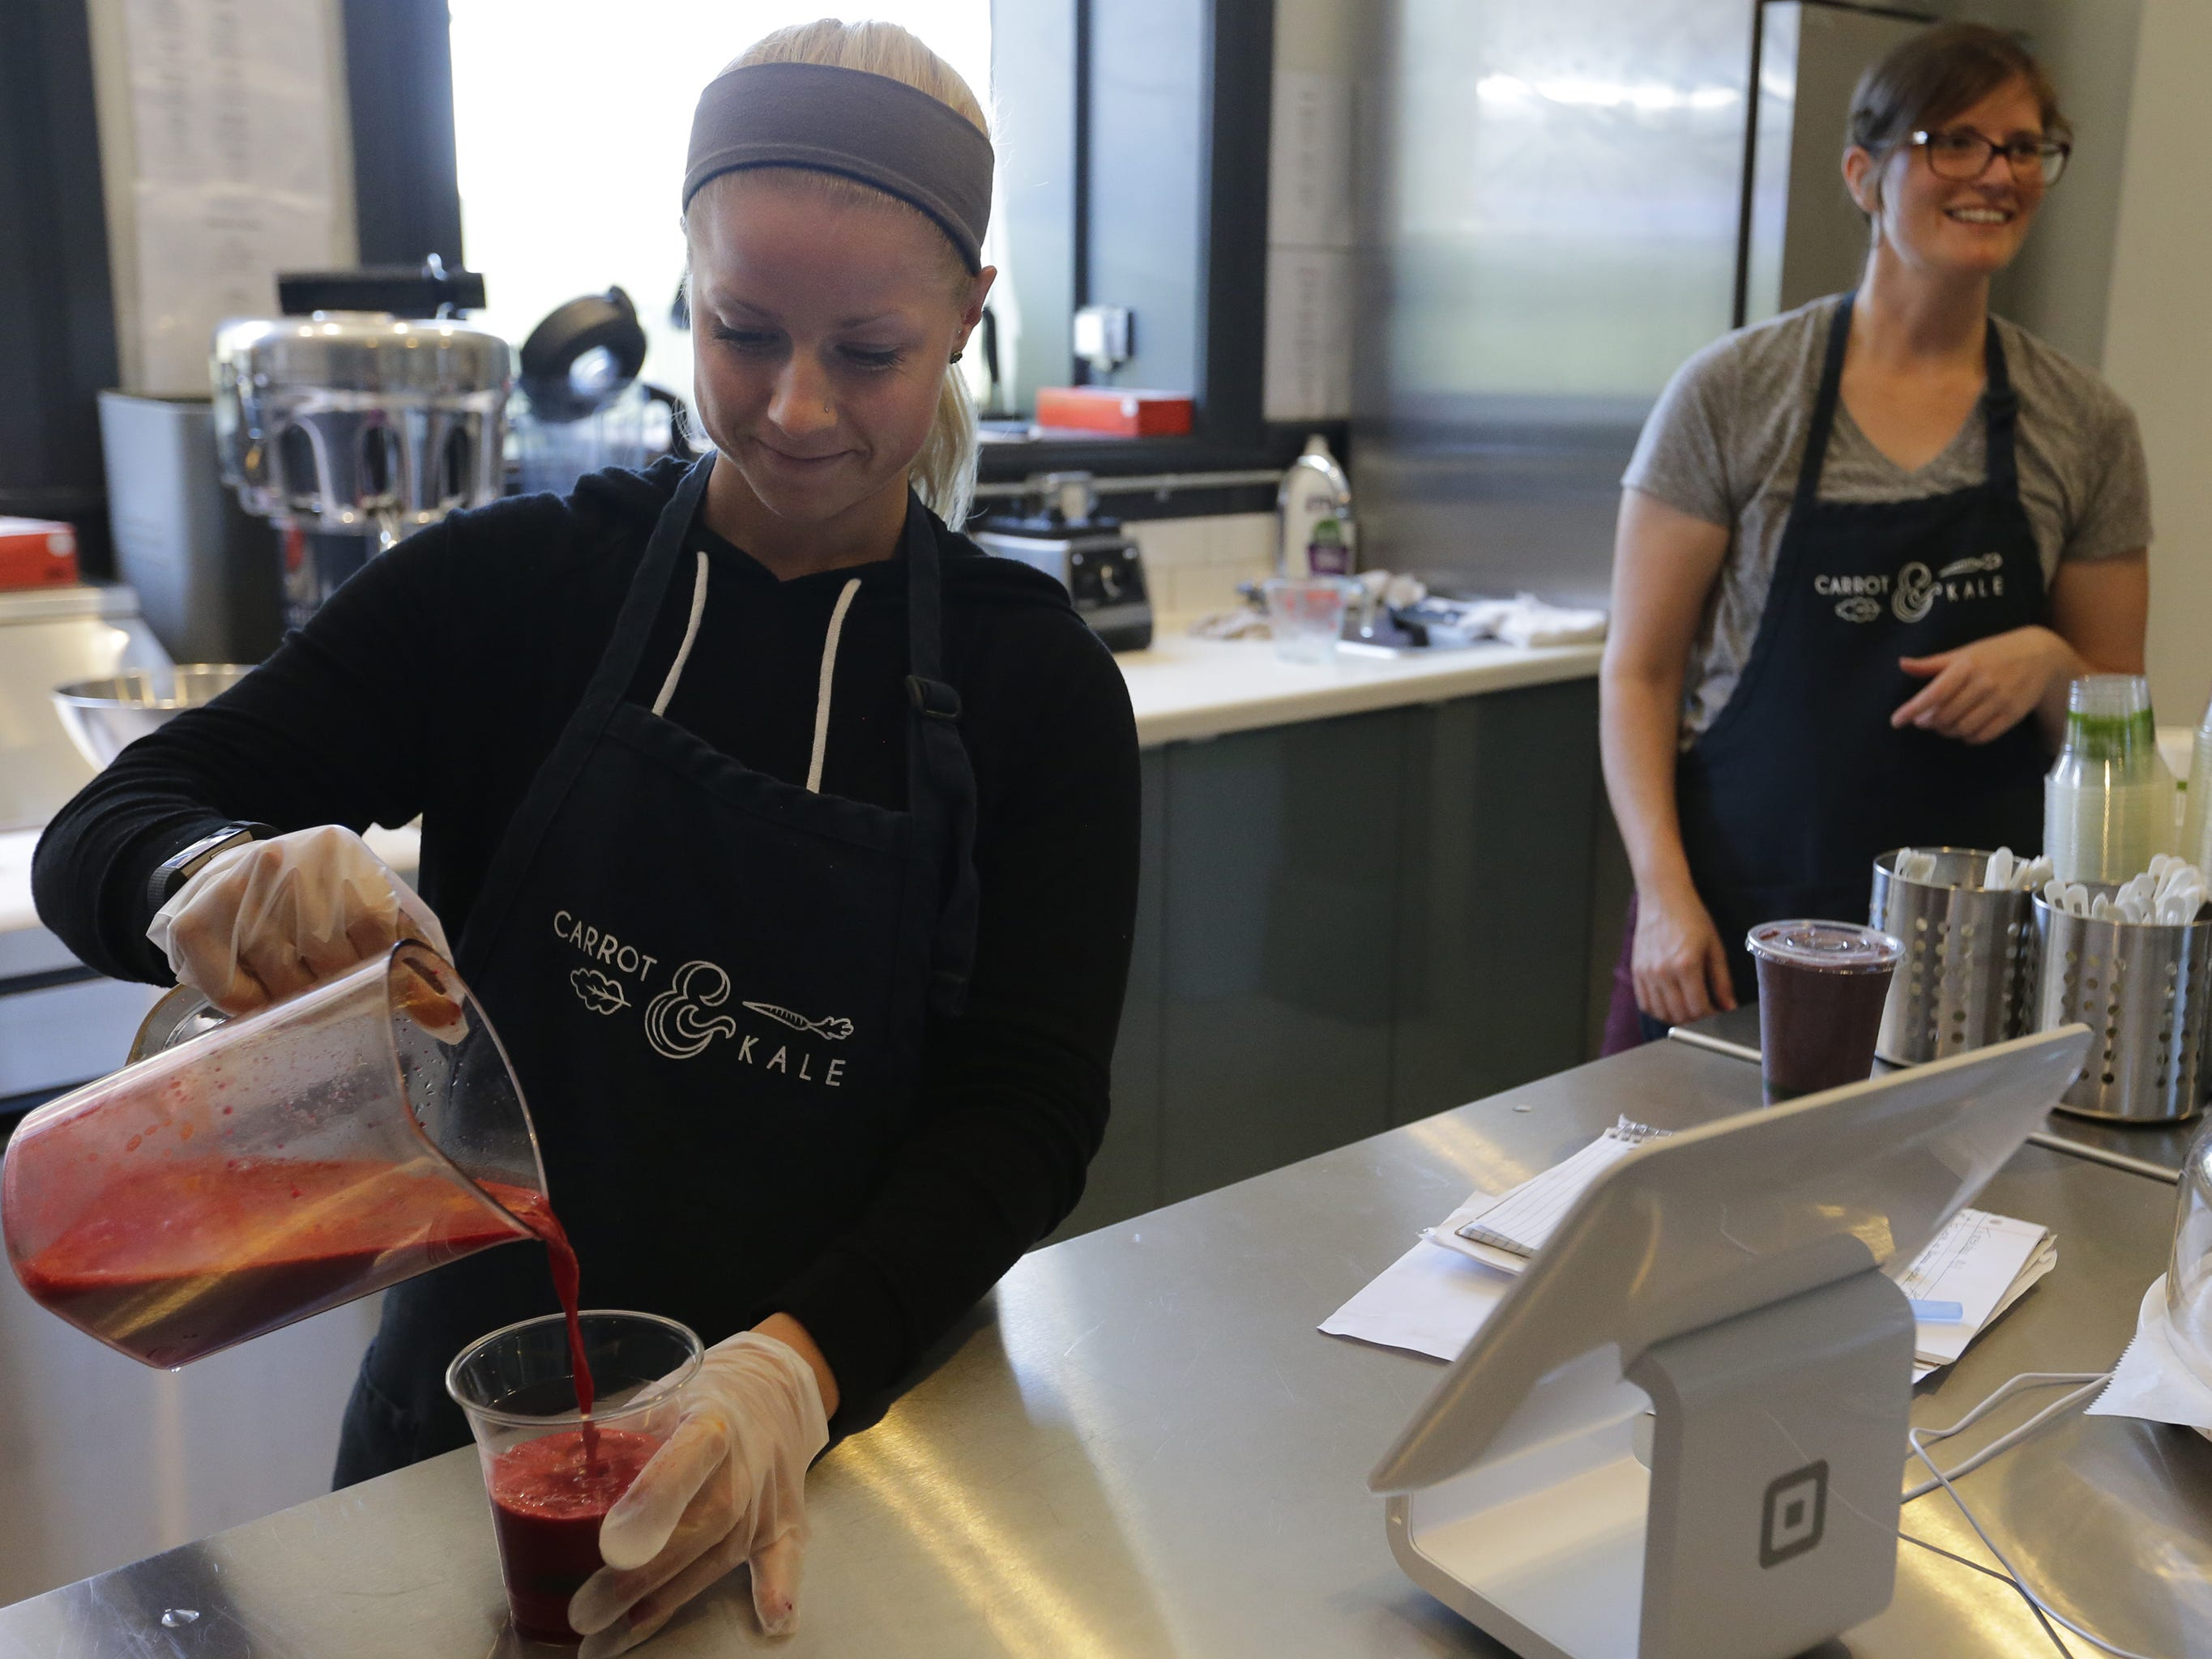 Courtney Holland, left, pours a beet juice drink as Lauren Bartelt talks with a customer Tuesday, Sept. 11, 2018, at Carrot & Kale in Oshkosh. The organic juice bar and cafe, 110 Algoma Blvd., offers healthy food and drink options in the city.